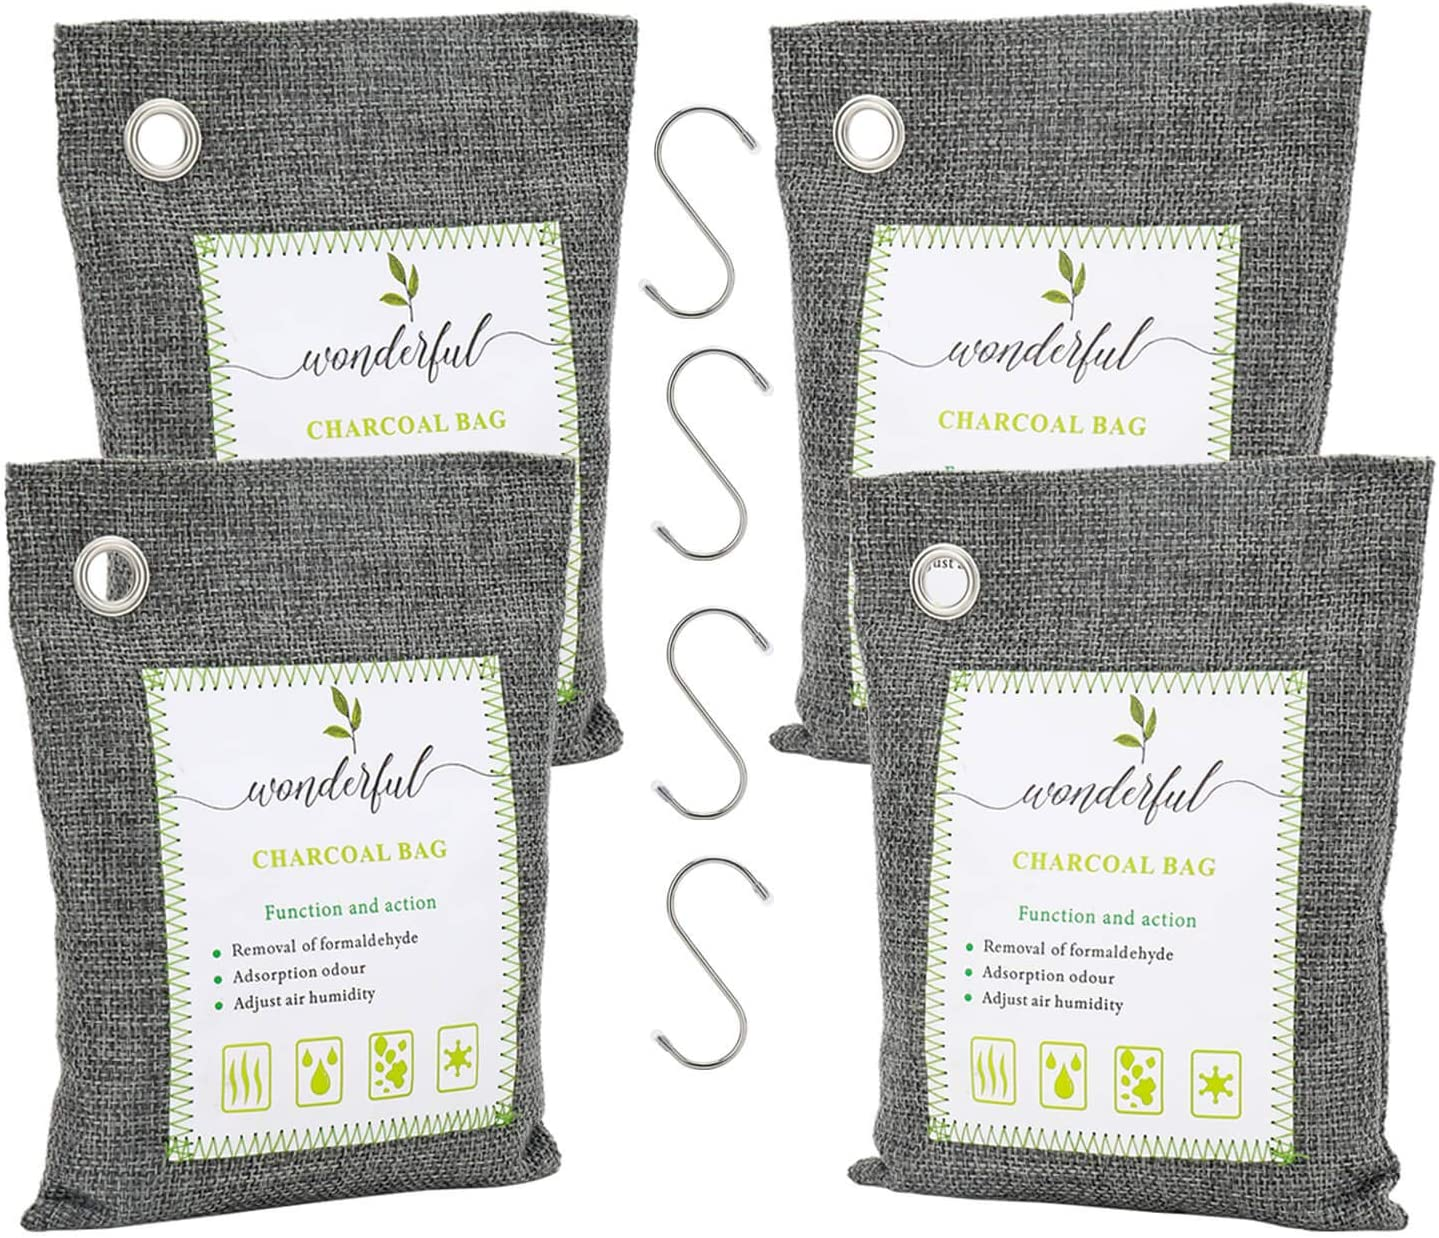 Angbo Activated Charcoal Odor Absorber Air Purifying Bags, Odor Eliminators for Home, Car, Closet 200g 4 Pack Charcoal Grey with Hooks